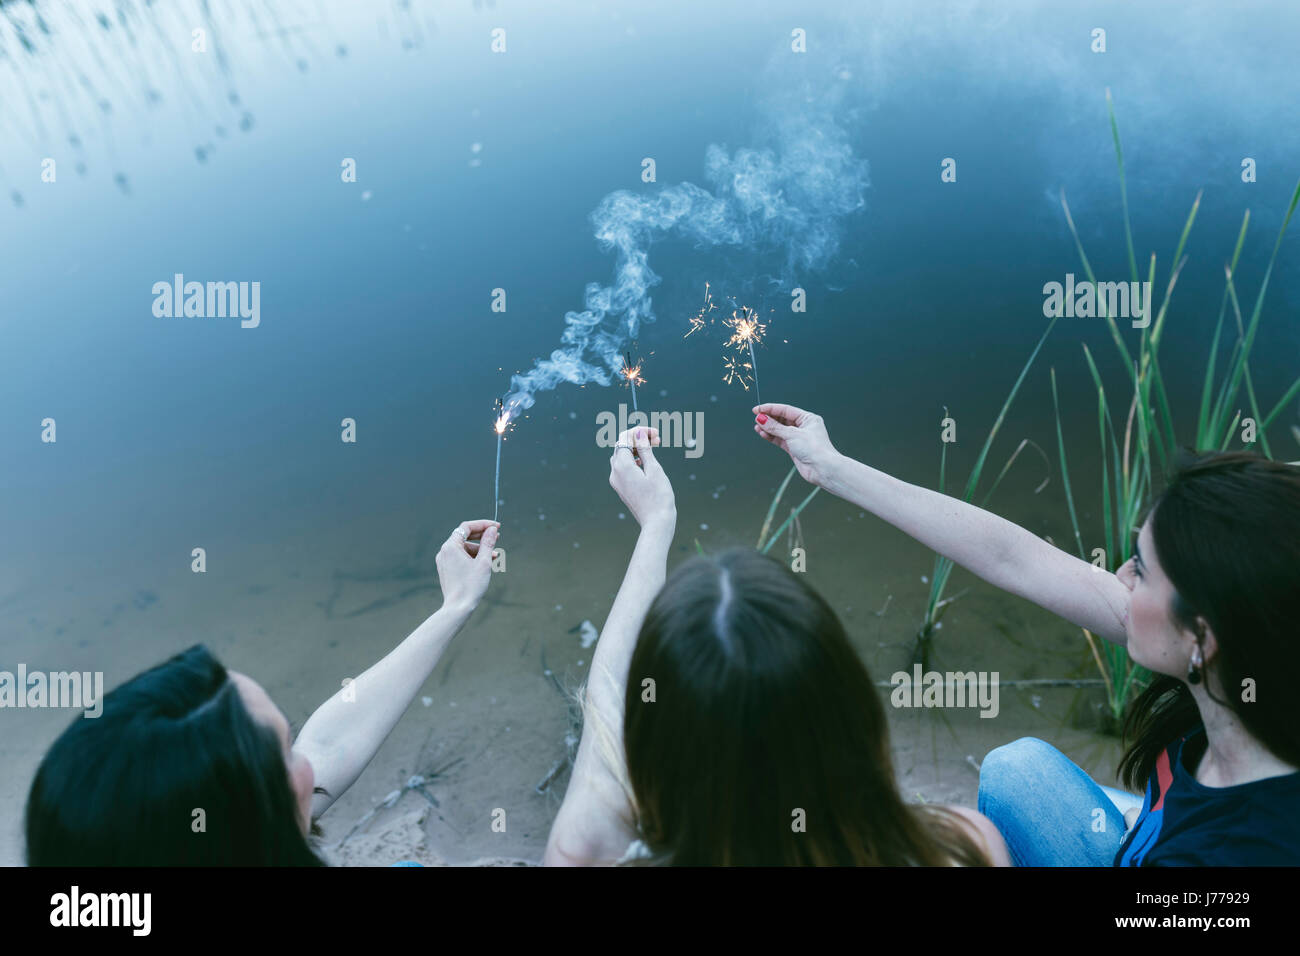 High angle view of female friends burning sparklers at lakeshore - Stock Image